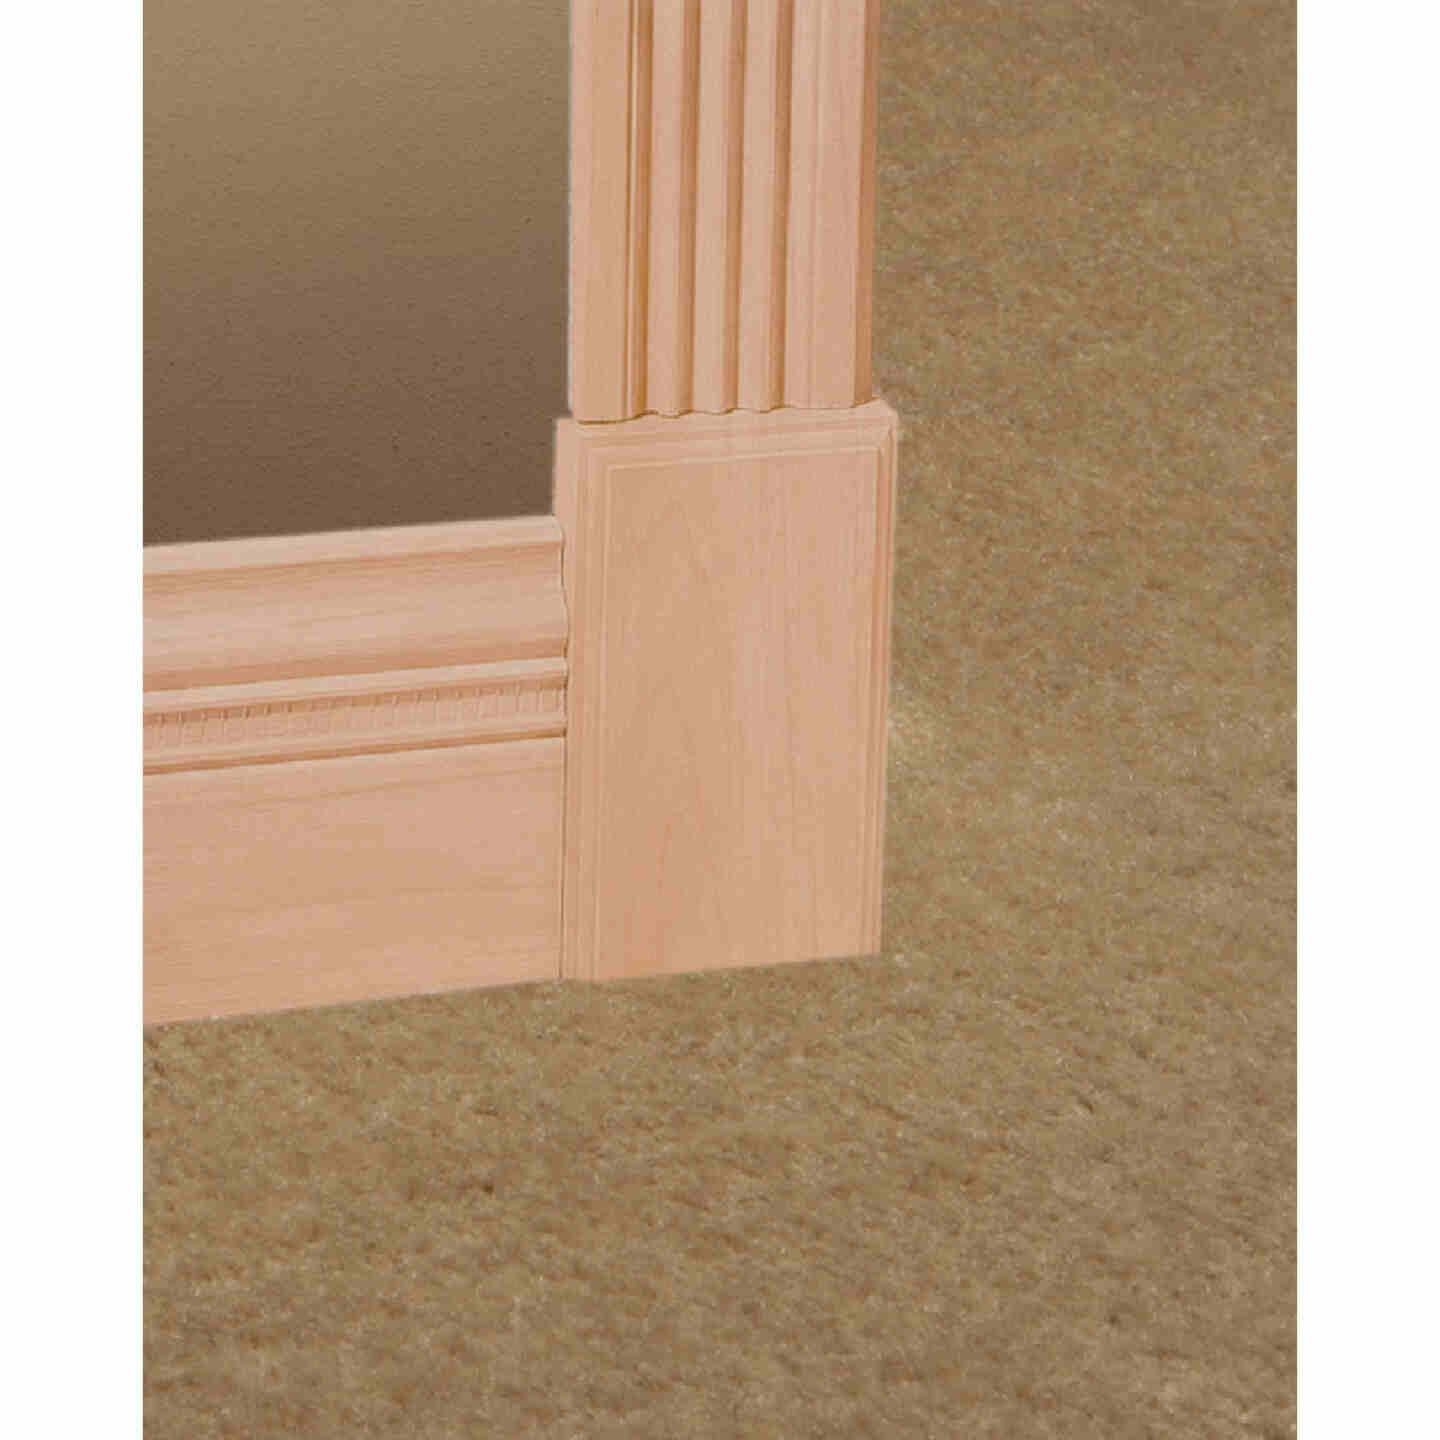 House of Fara 3/4 In. x 3/4 In. 8 Ft. Solid Red Oak Cove Molding Image 2